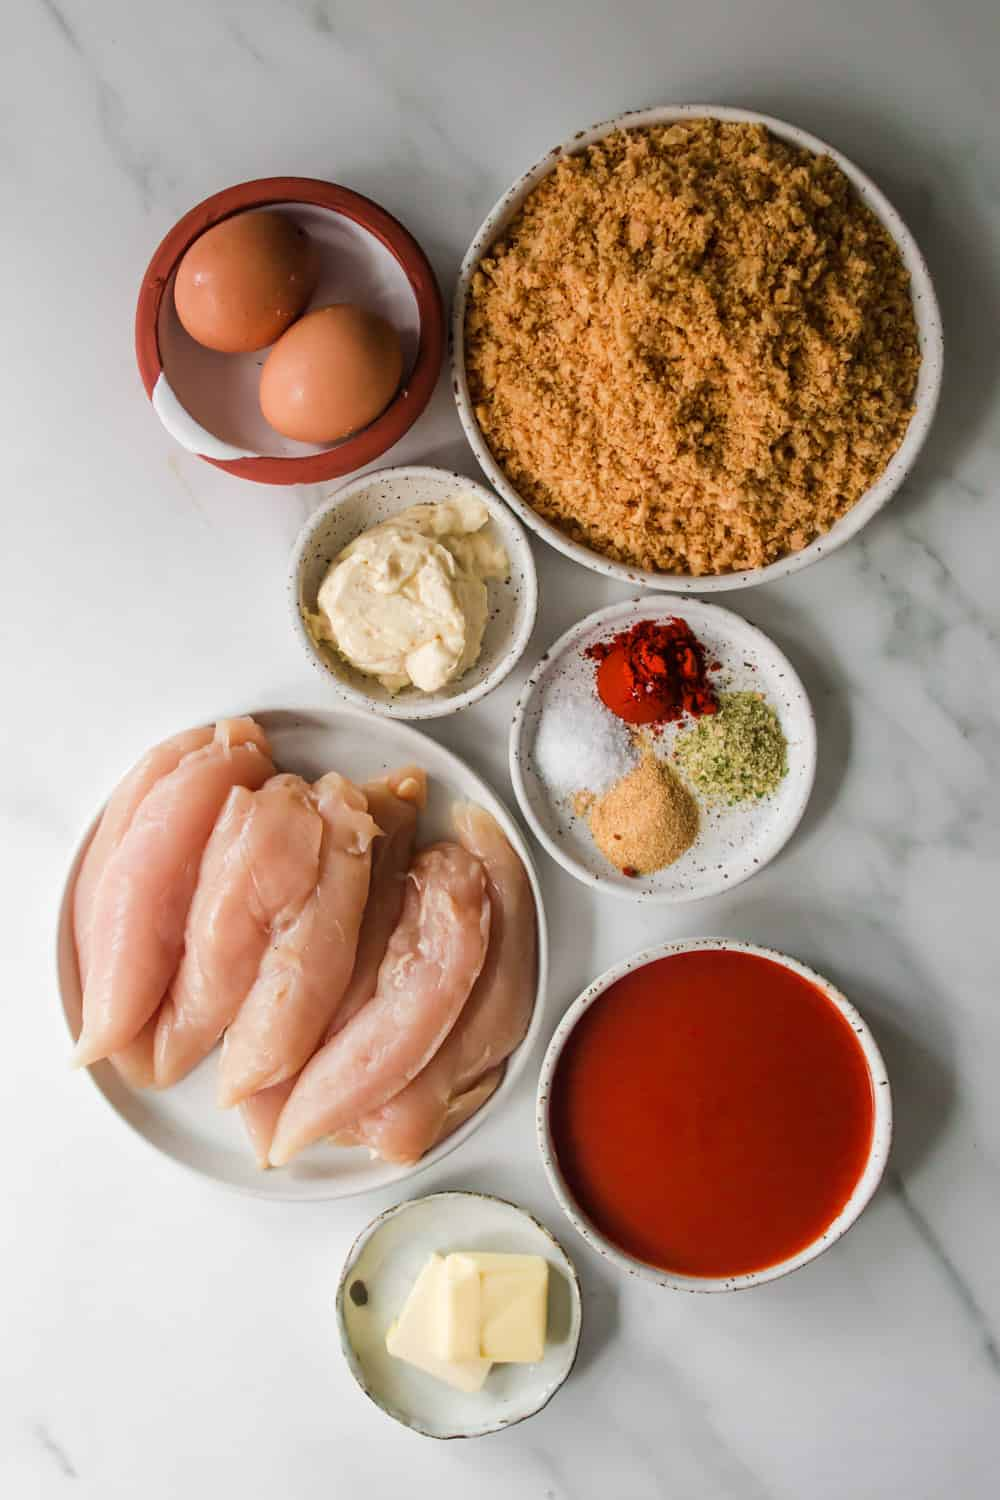 White individual bowls filled with raw chicken, buffalo sauce, spices, and eggs.